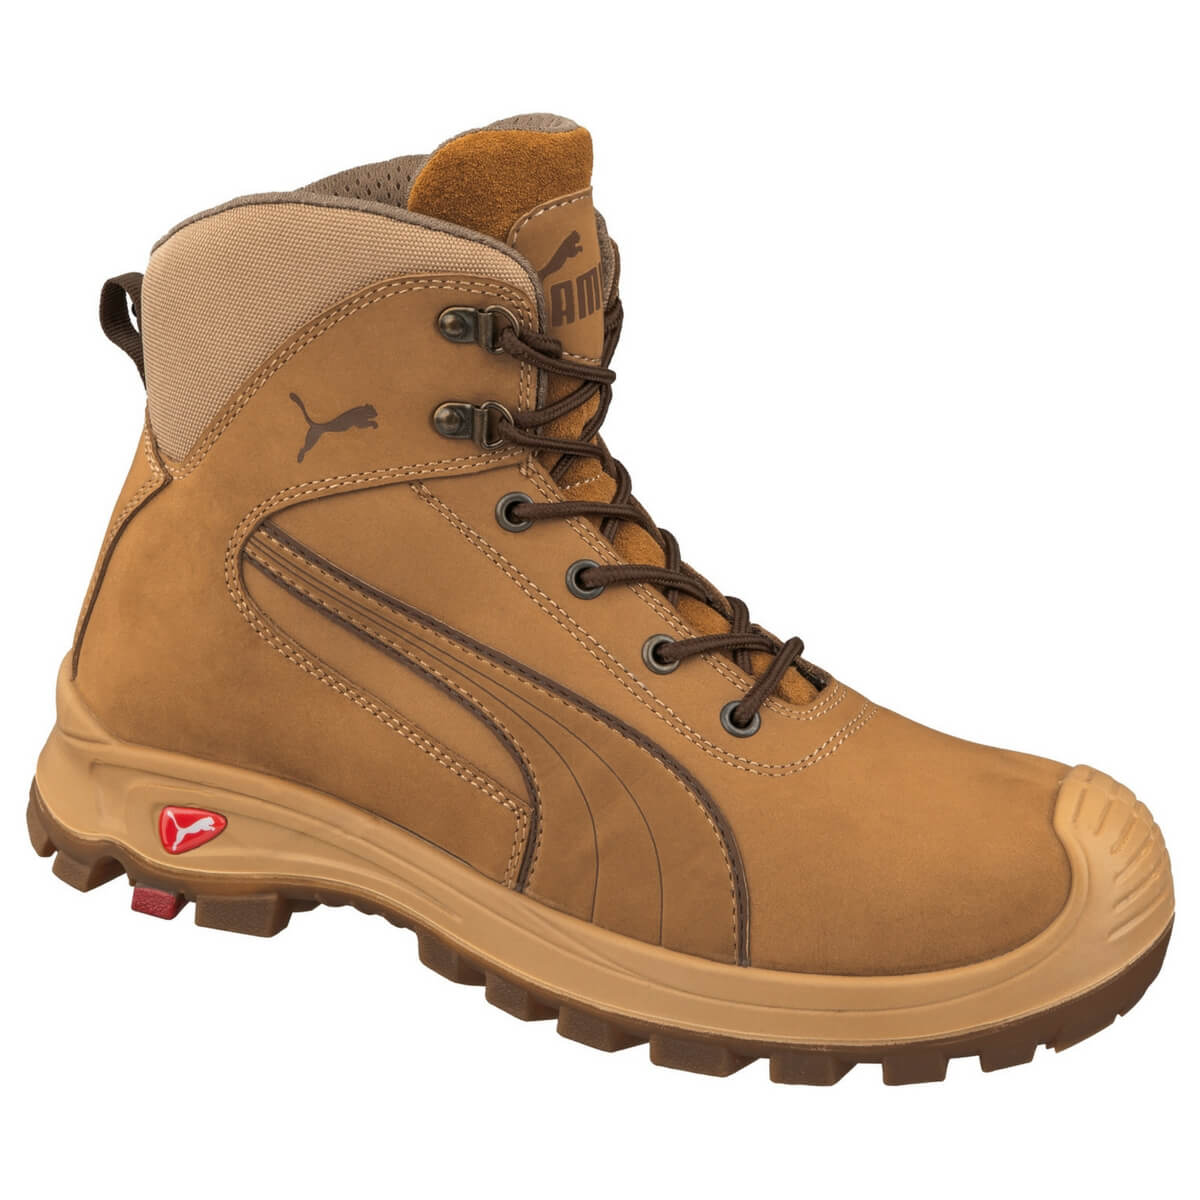 Puma 630367 Nullarbor Composite Toe Safety Boot 86d80960f762